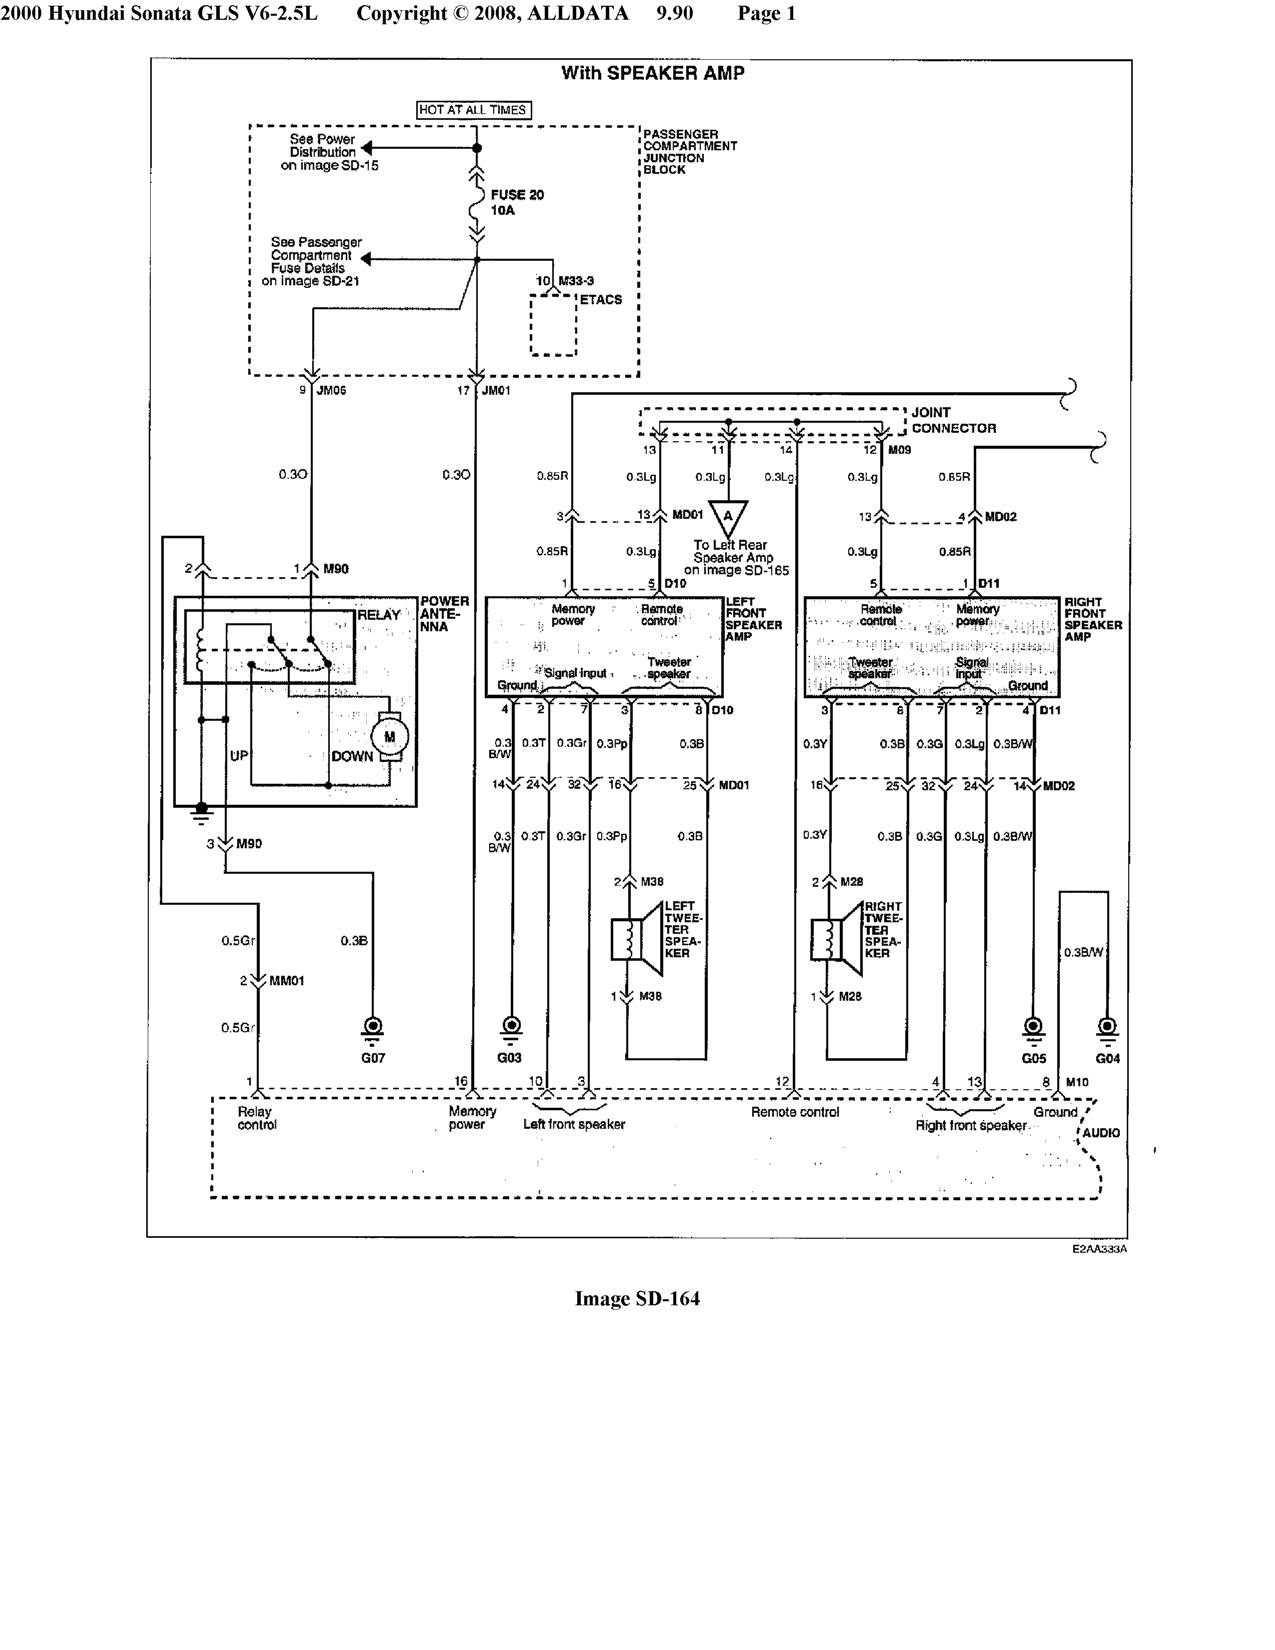 1996 Hyundai Accent Radio Wiring Diagram - Trusted Wiring Diagrams •